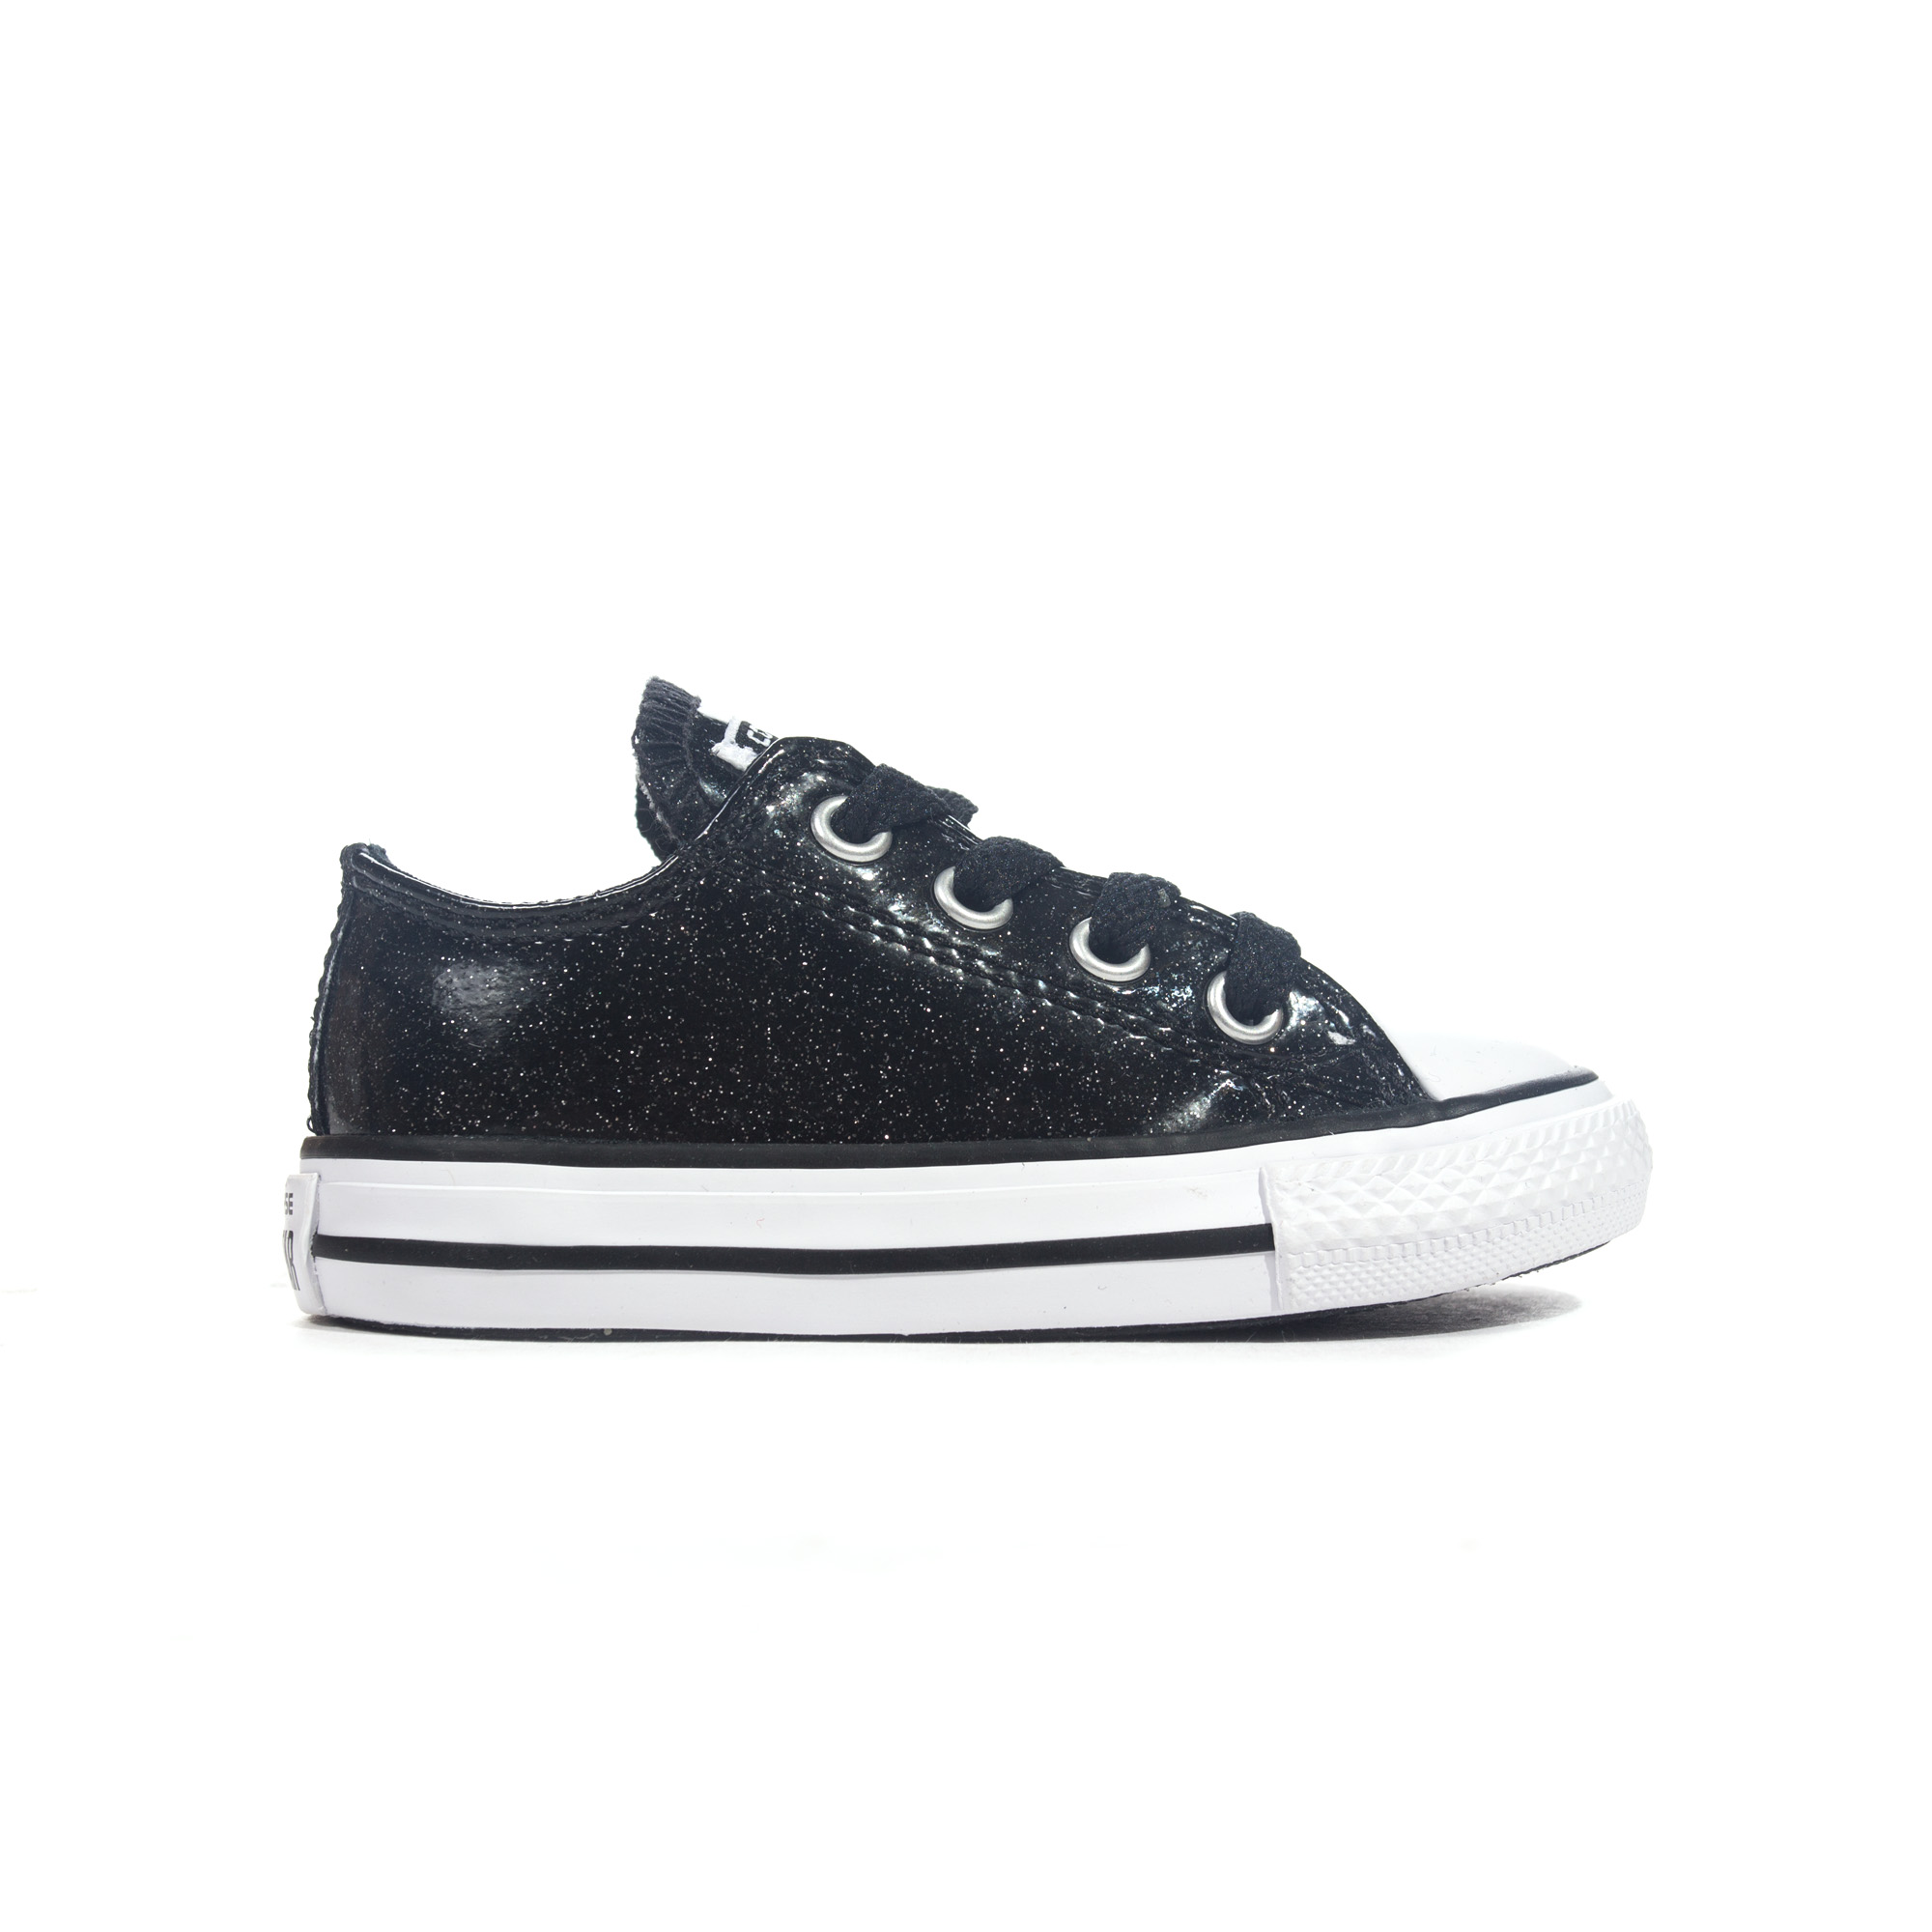 Details about Converse Chuck Taylor All Star Glitter Ox Infant Girls  Trainer Black - UK 4 5ff72da87